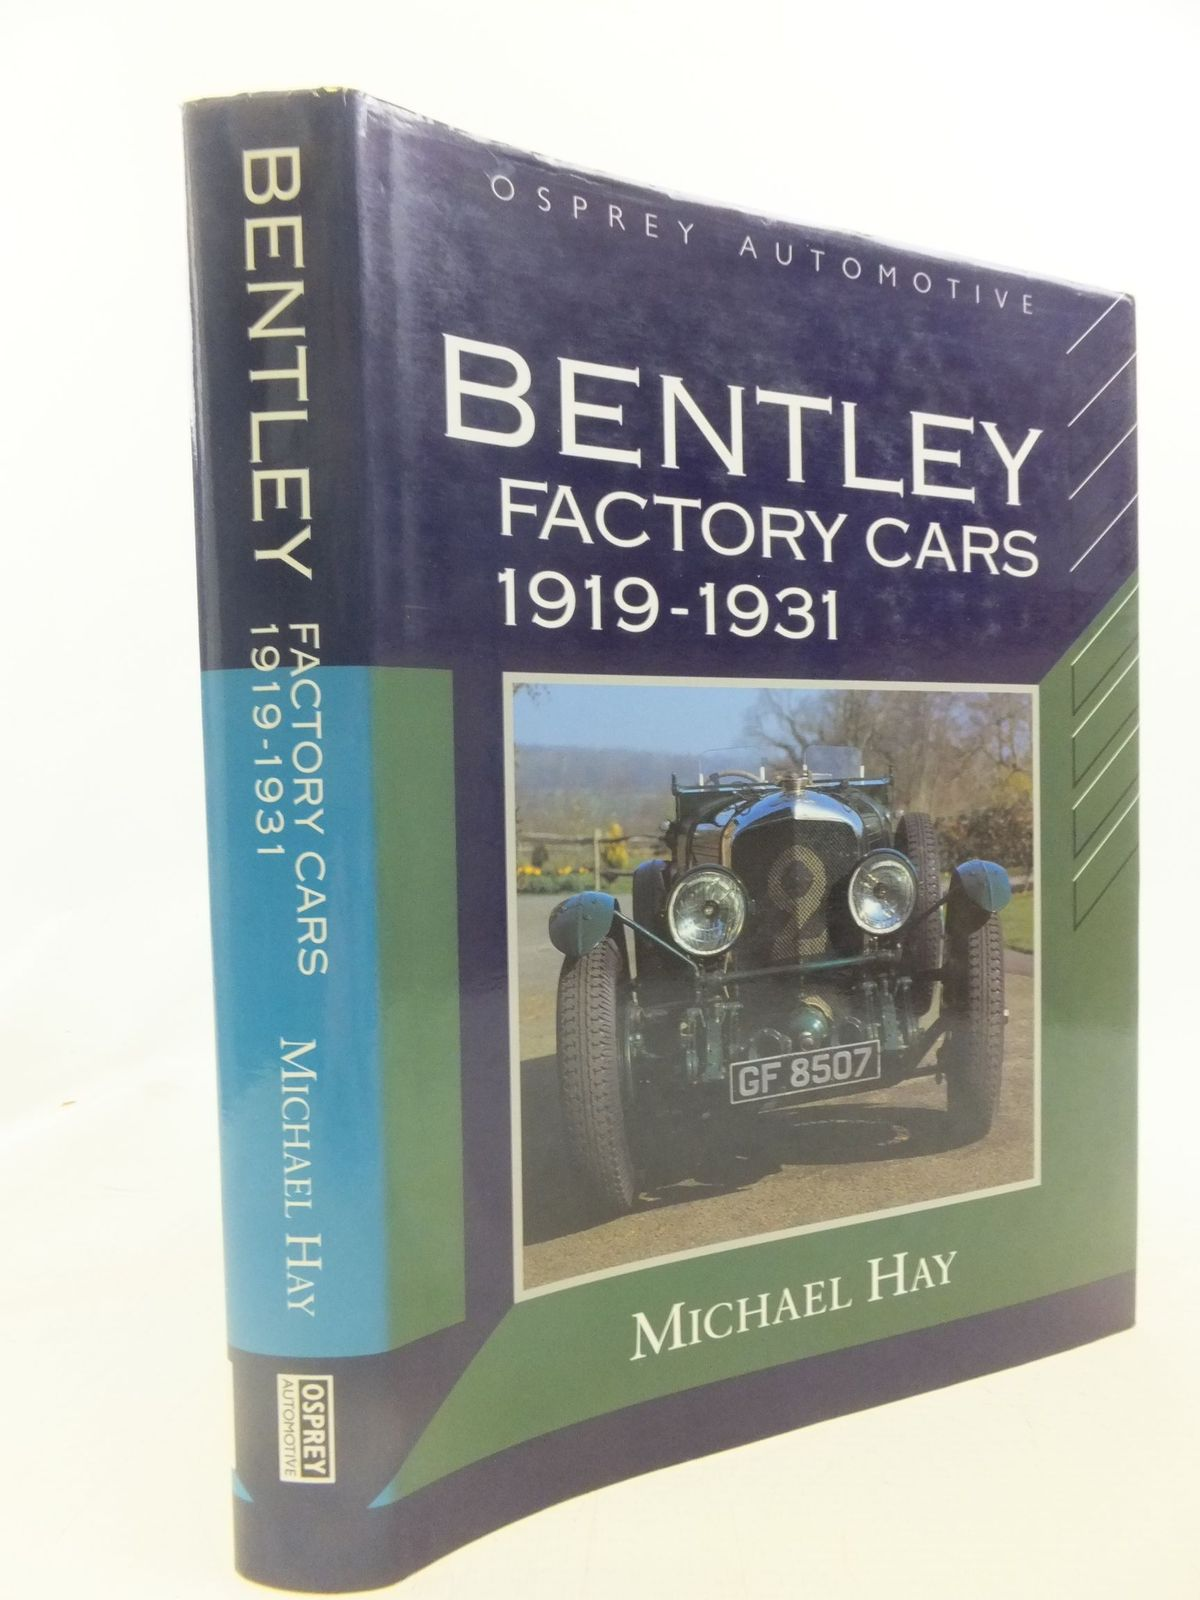 Photo of BENTLEY FACTORY CARS 1919-1931 written by Hay, Michael published by Osprey Automotive (STOCK CODE: 1712092)  for sale by Stella & Rose's Books